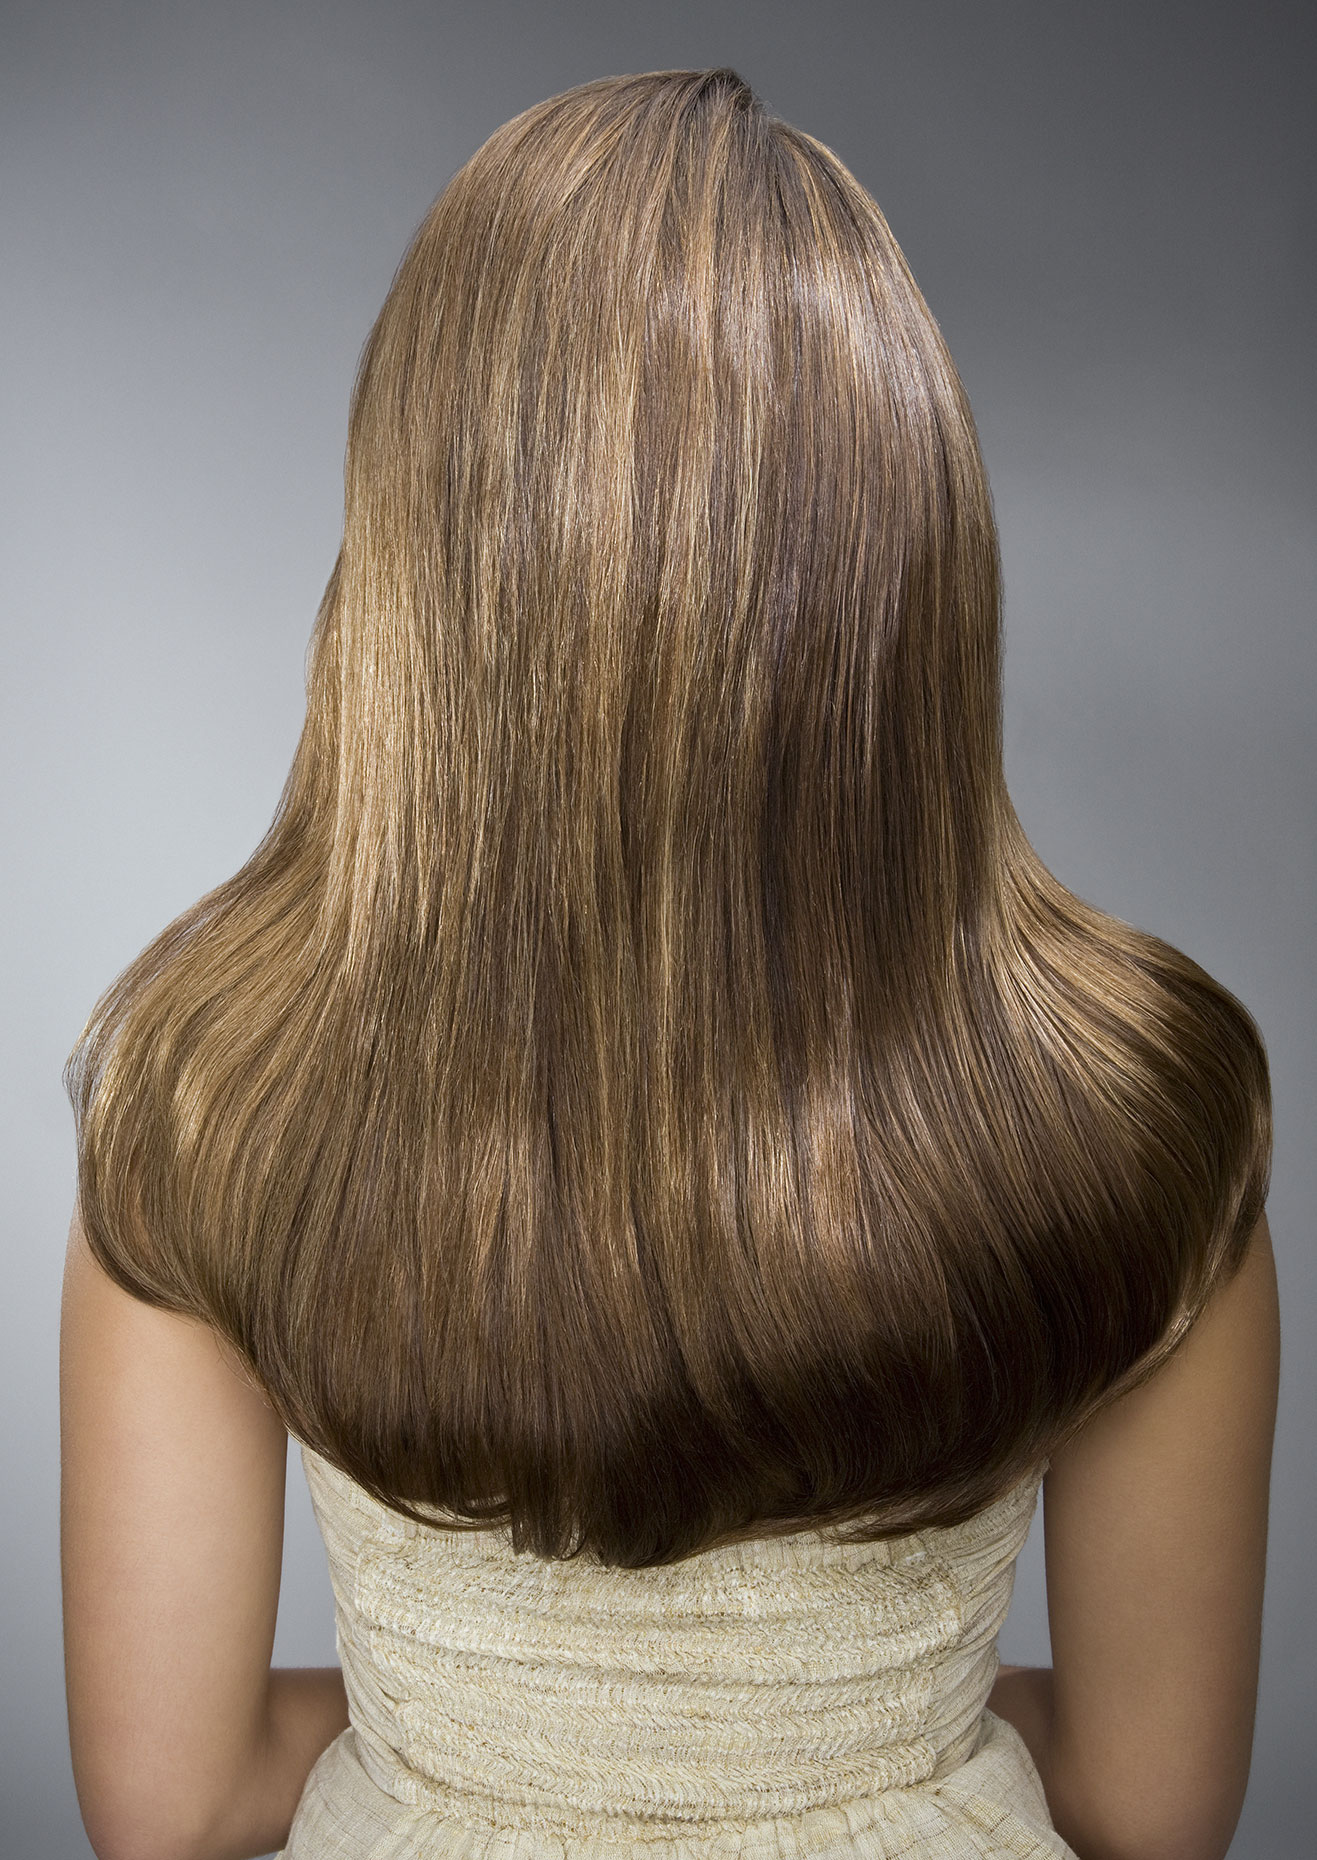 Young woman with shiny hair from the back.